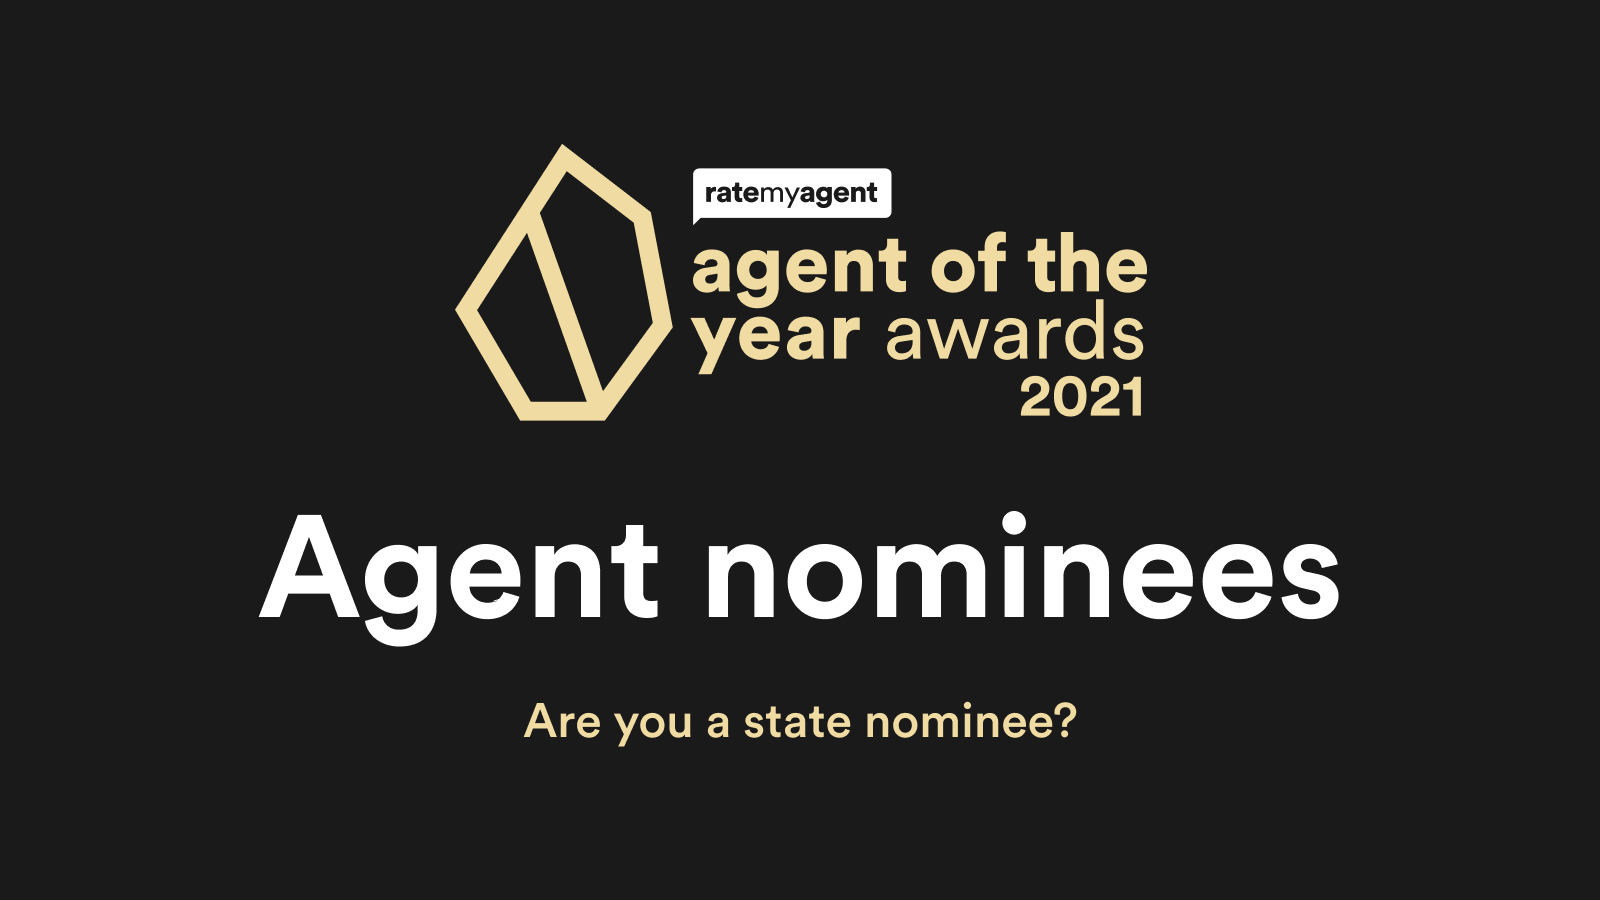 2021 Agent of the Year Nominees announced